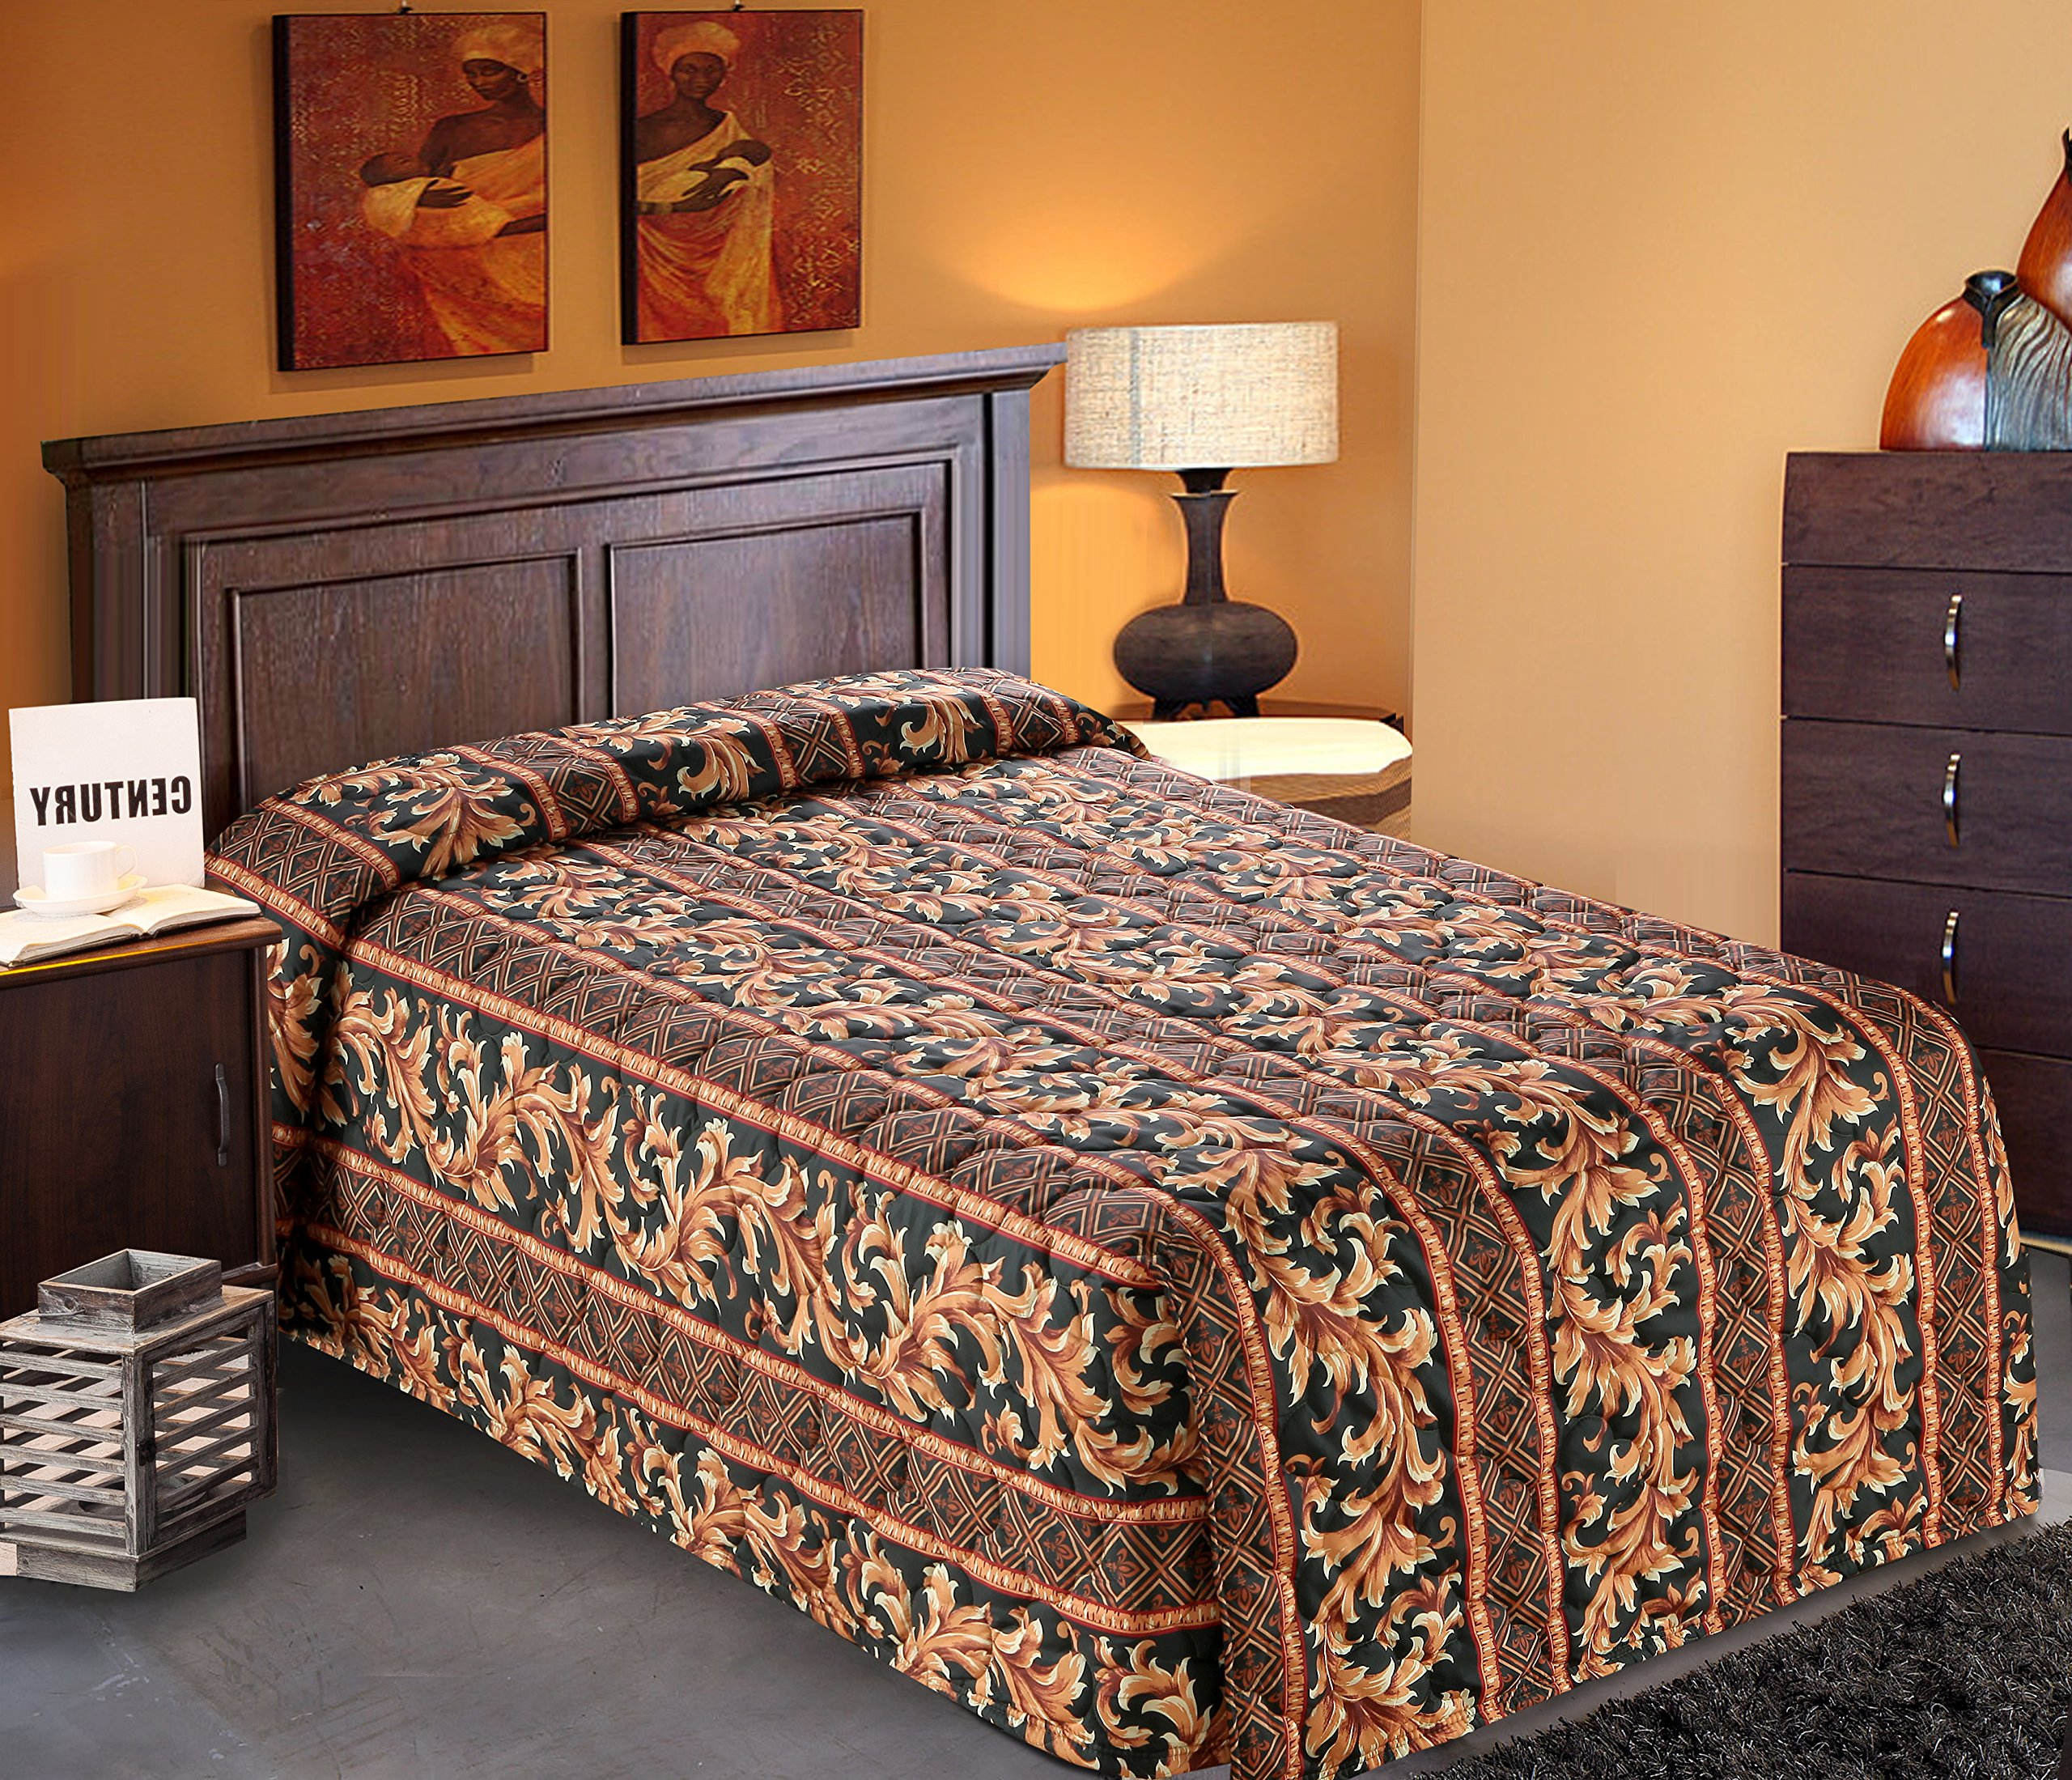 Quilted Bedspread Designed for Hotel/Motel-Resort-Air B&B & Home Over Sized 21'' Fall on Each Side 100% Polyester Fabric-Modern Print-Green-WaterFall Style(Twin 81x110-4.7 lbs)